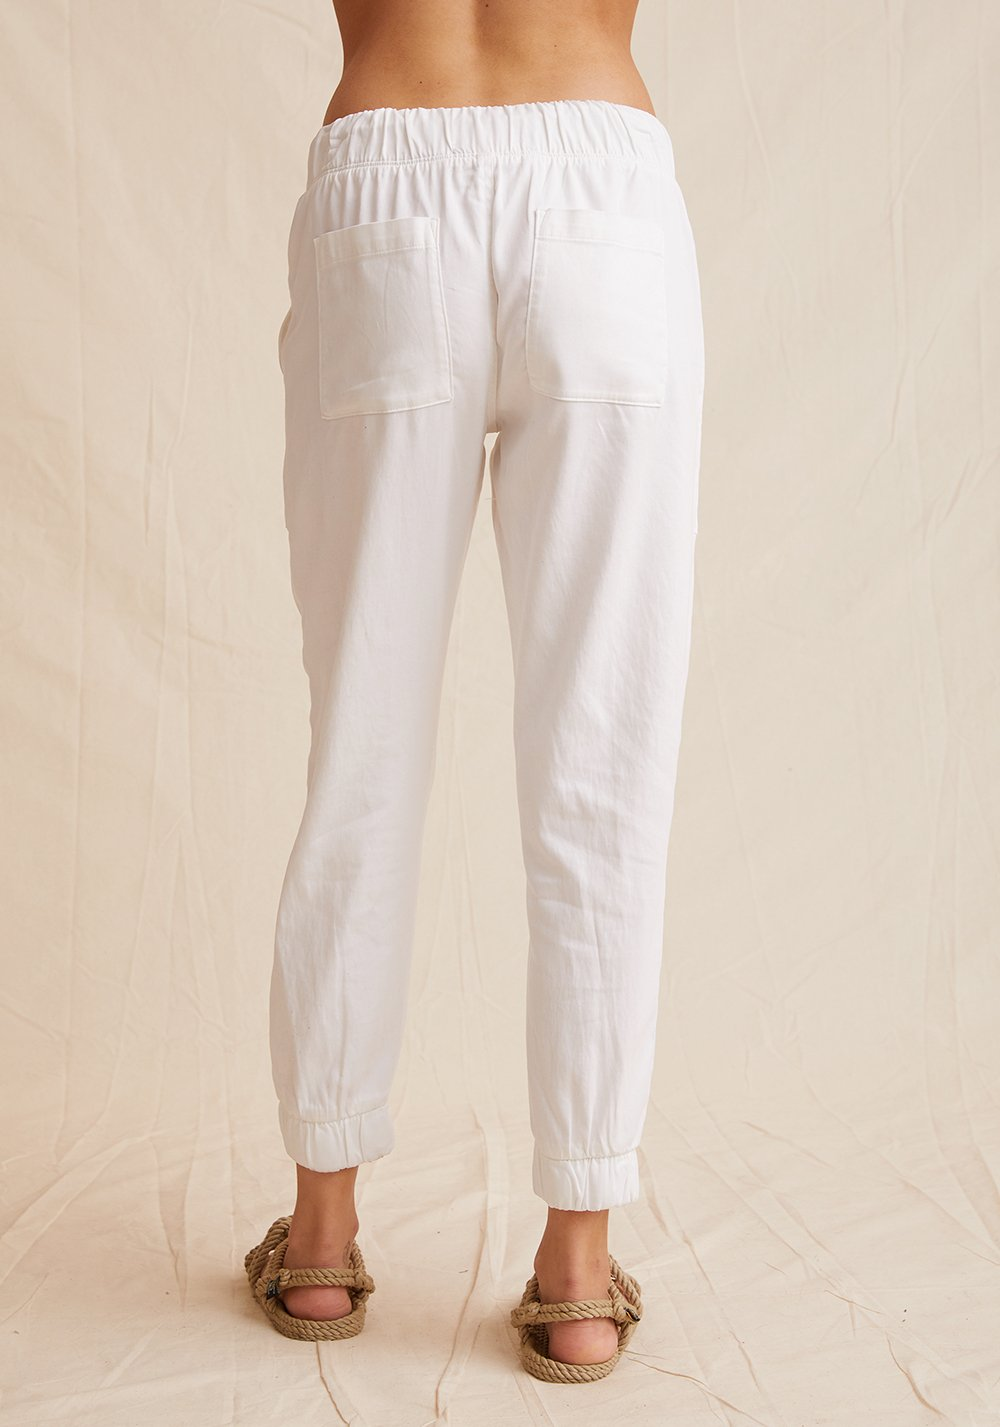 Pocket jogger without rips - white